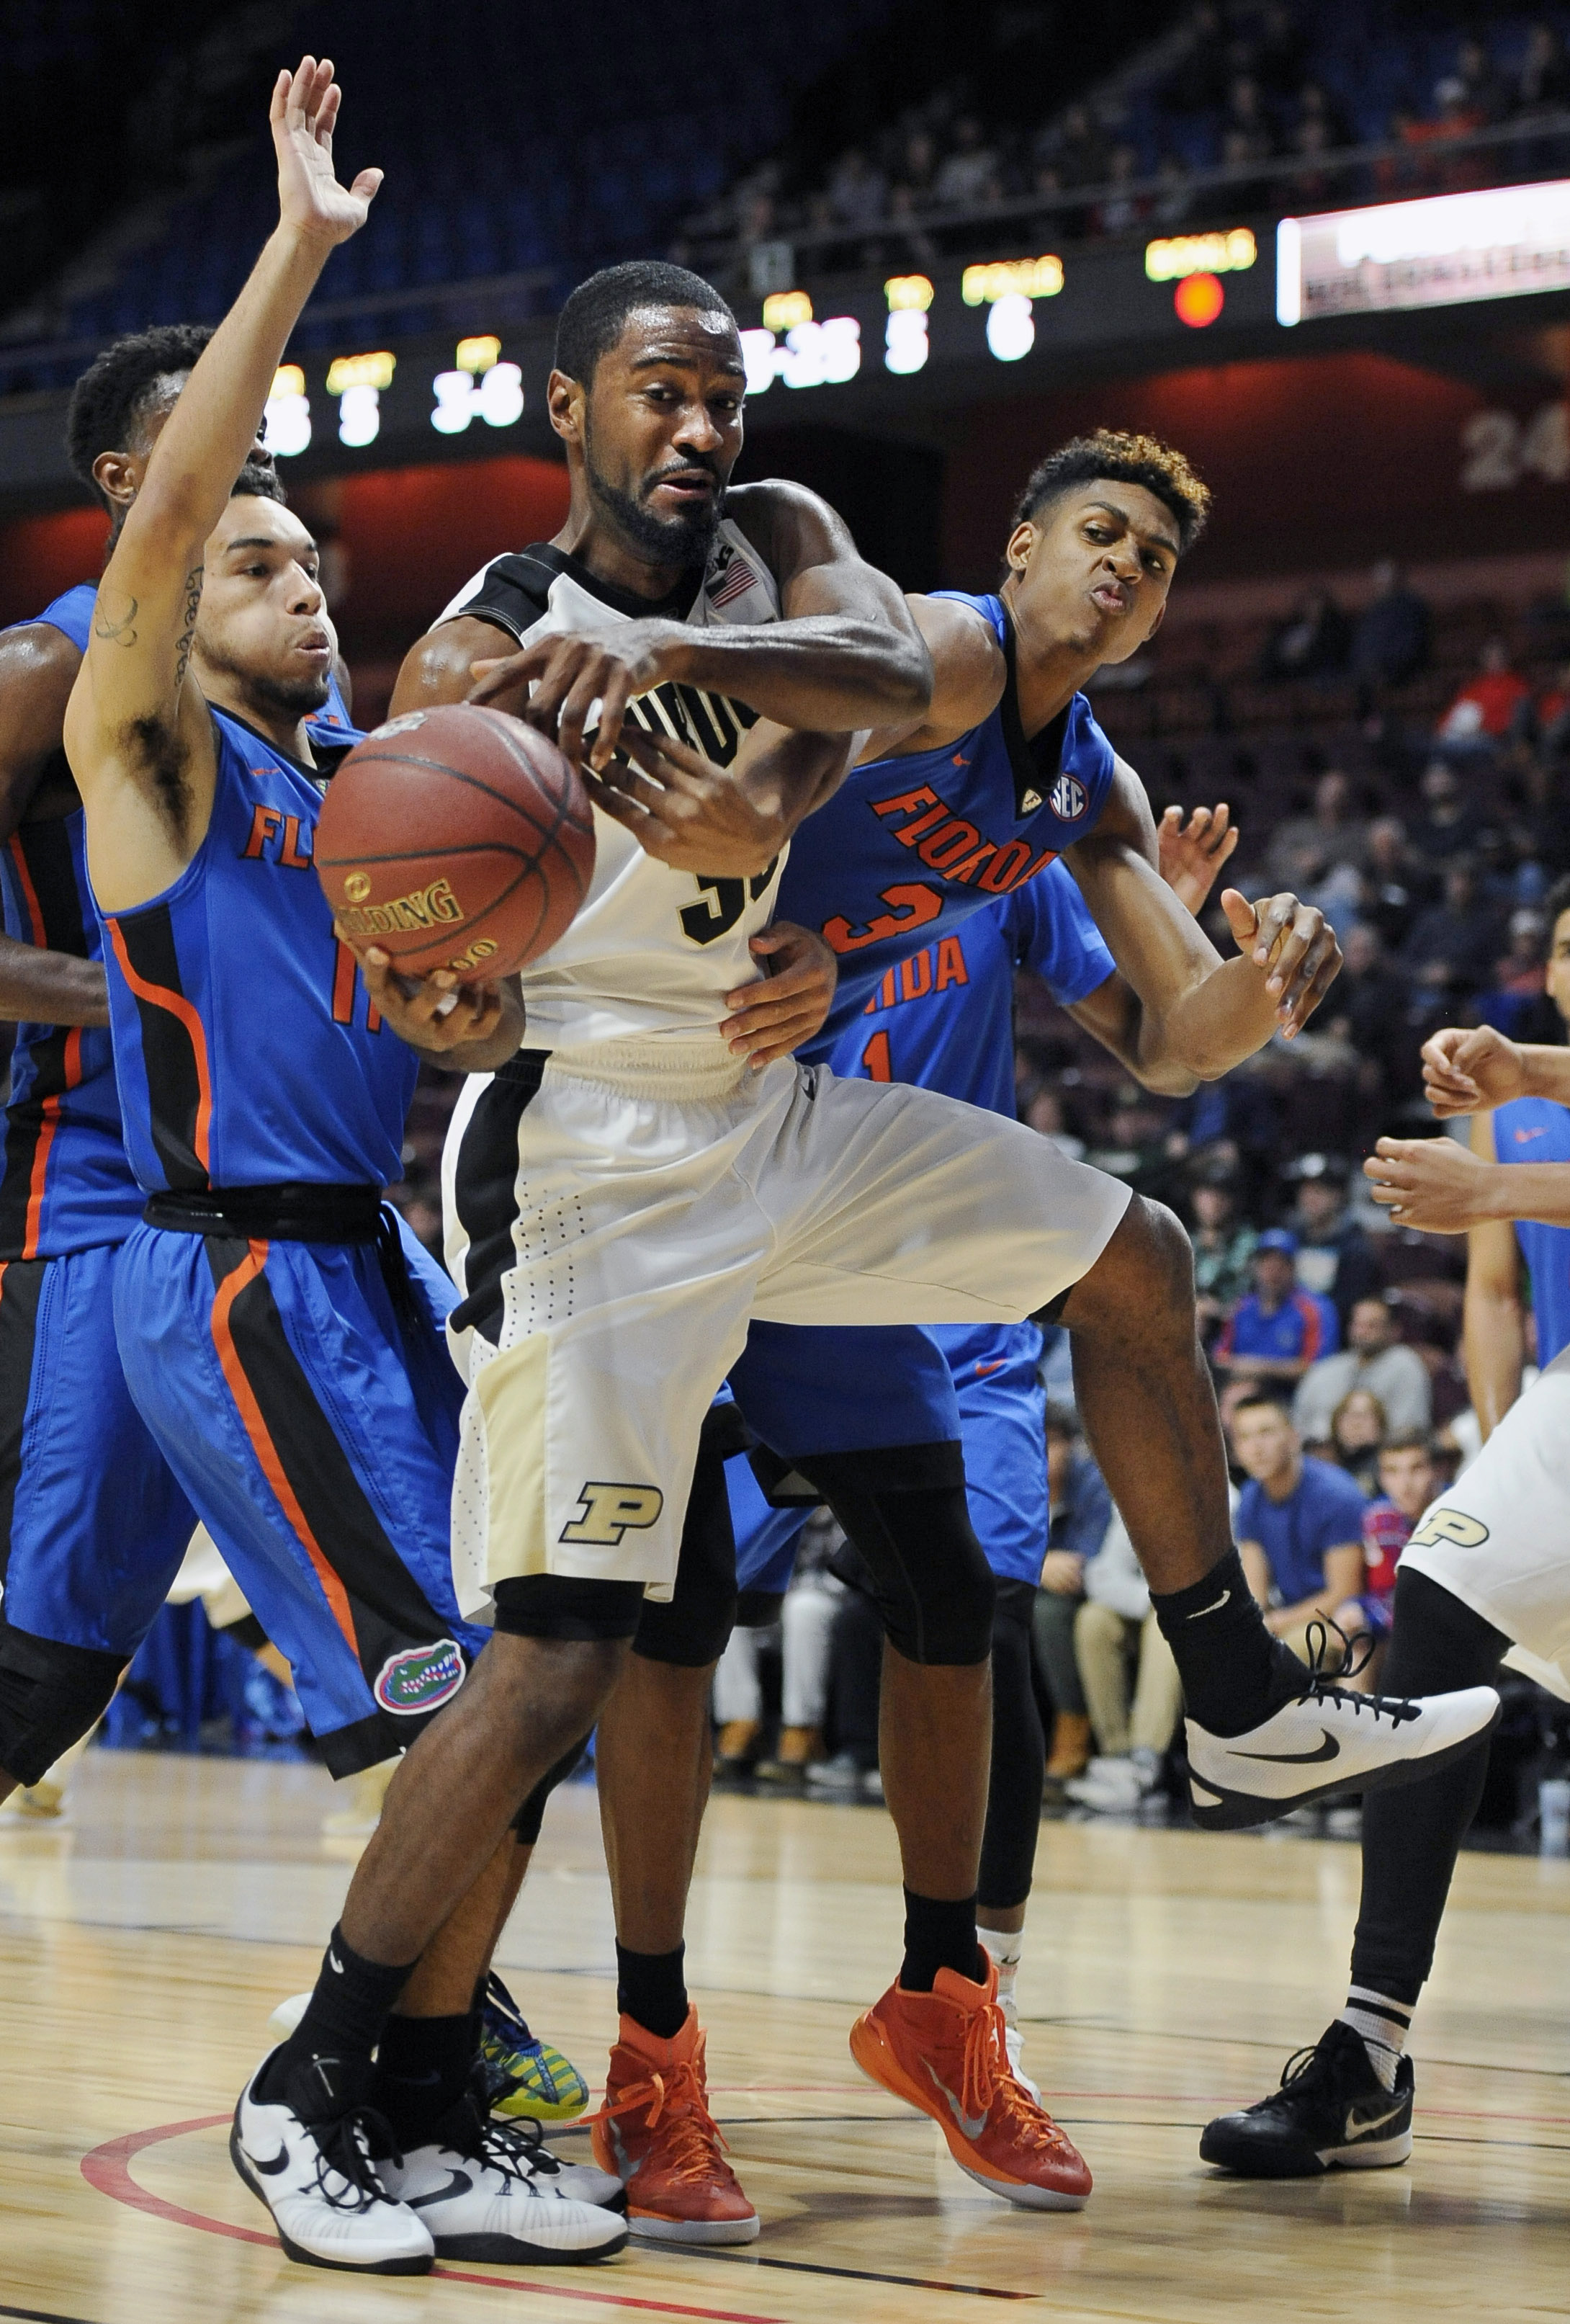 Purdue's Rapheal Davis, center, keeps the ball from Florida's Chris Chiozza, left, and Devin Robinson, right, during the first half of an NCAA college basketball game Sunday, Nov. 22, 2015, in Uncasville, Conn. (AP Photo/Jessica Hill)